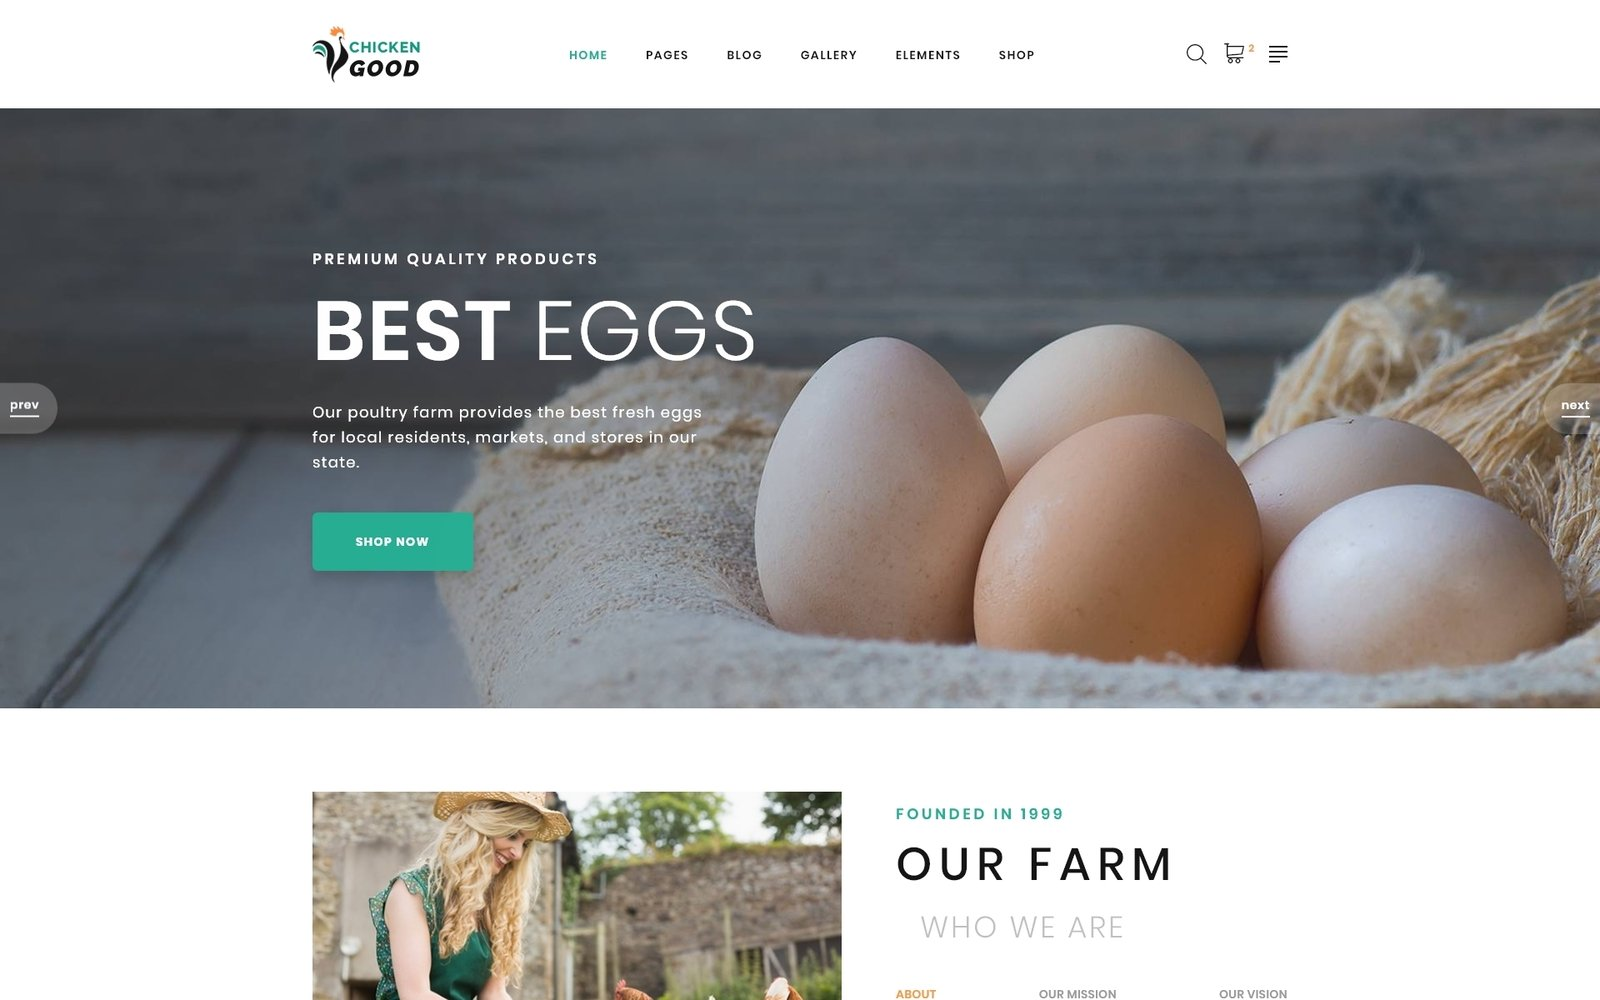 Chicken Good - Poultry Farm Multipage HTML Website Template - screenshot